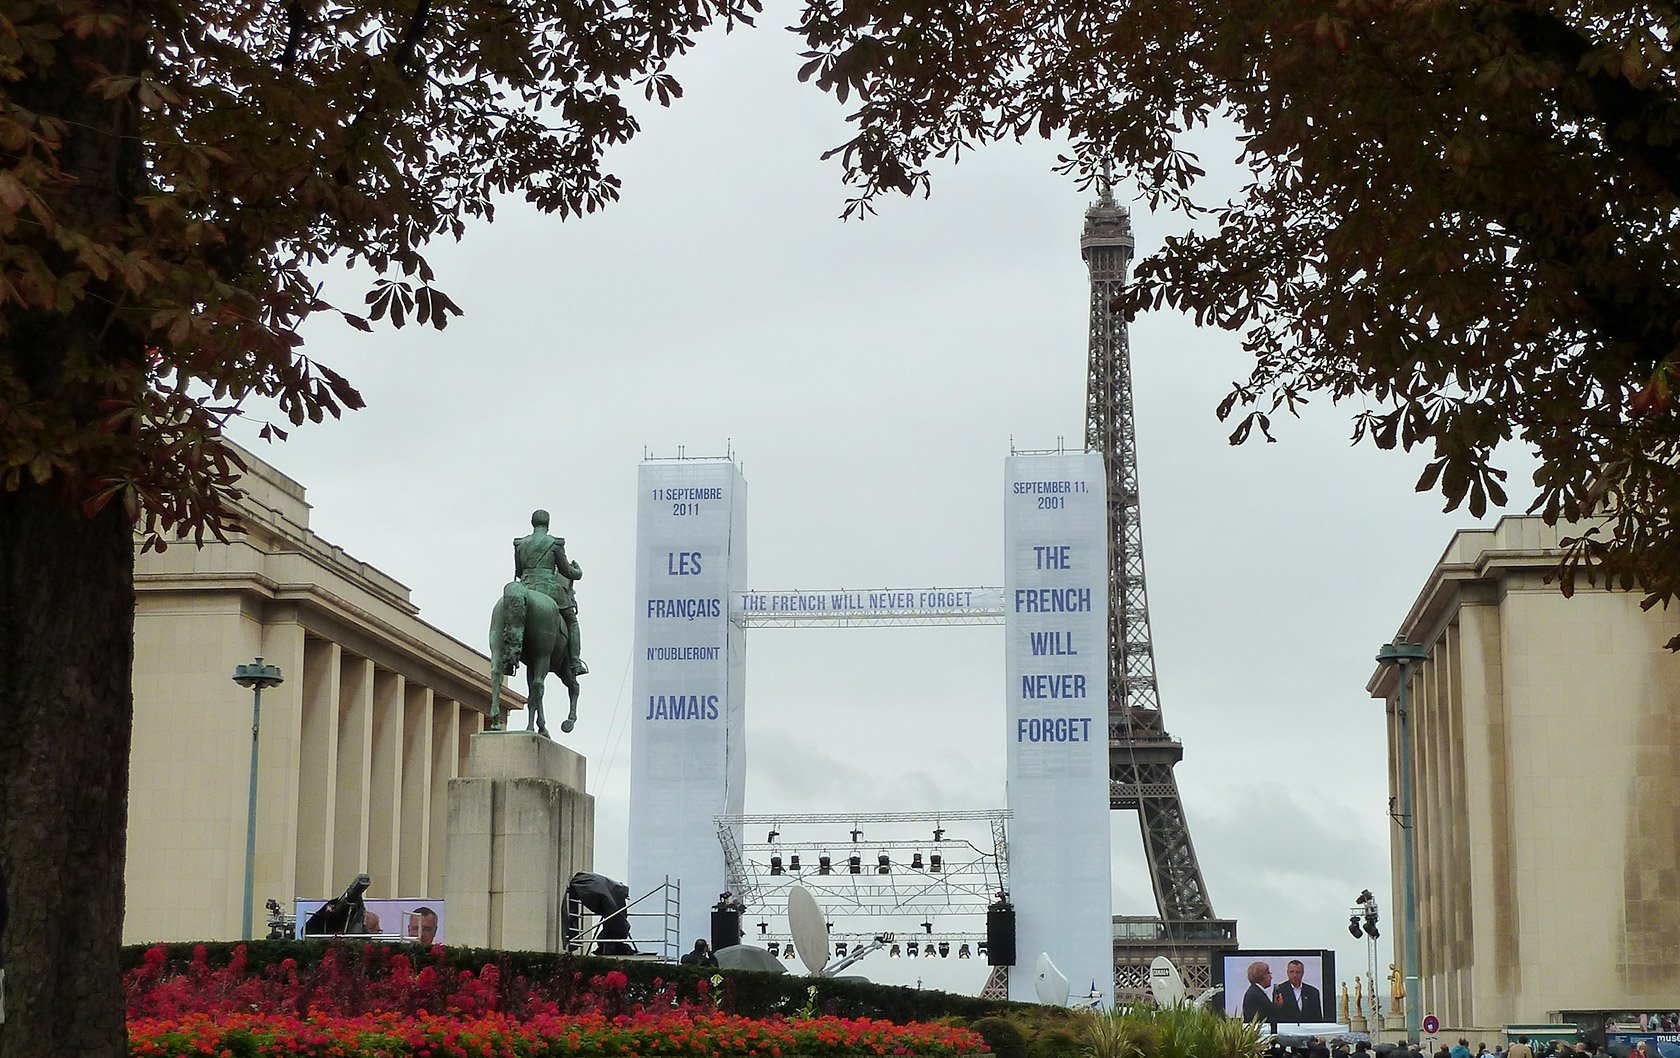 The French Will Never Forget: A Commemoration of 9/11 in Paris